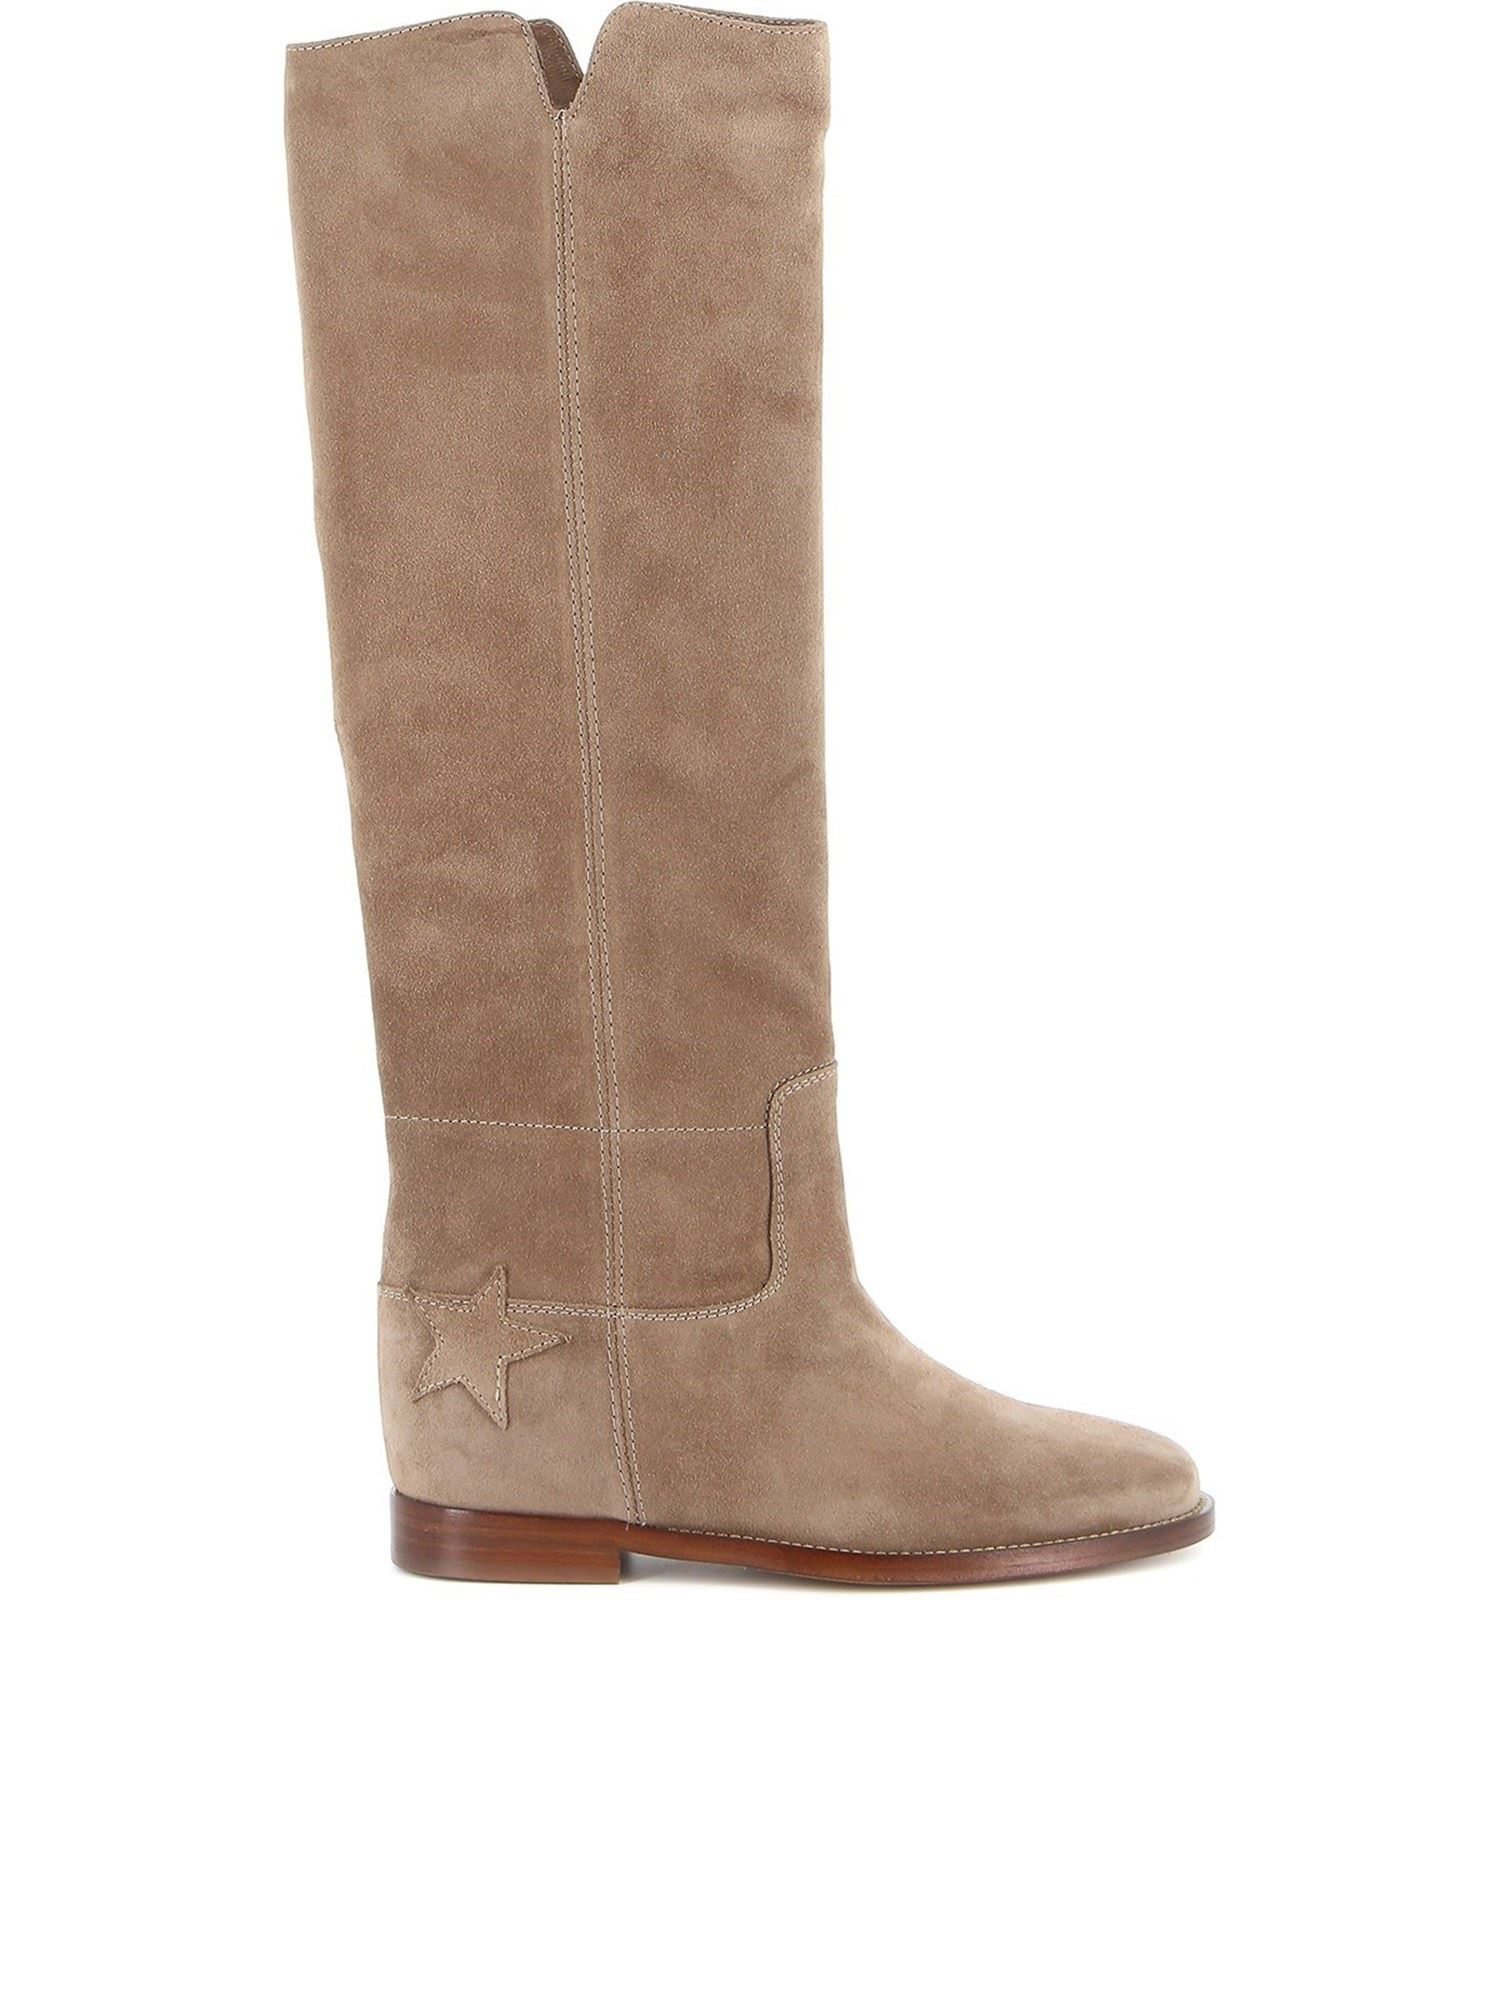 Via Roma 15 STAR PATCH BOOTS IN BEIGE